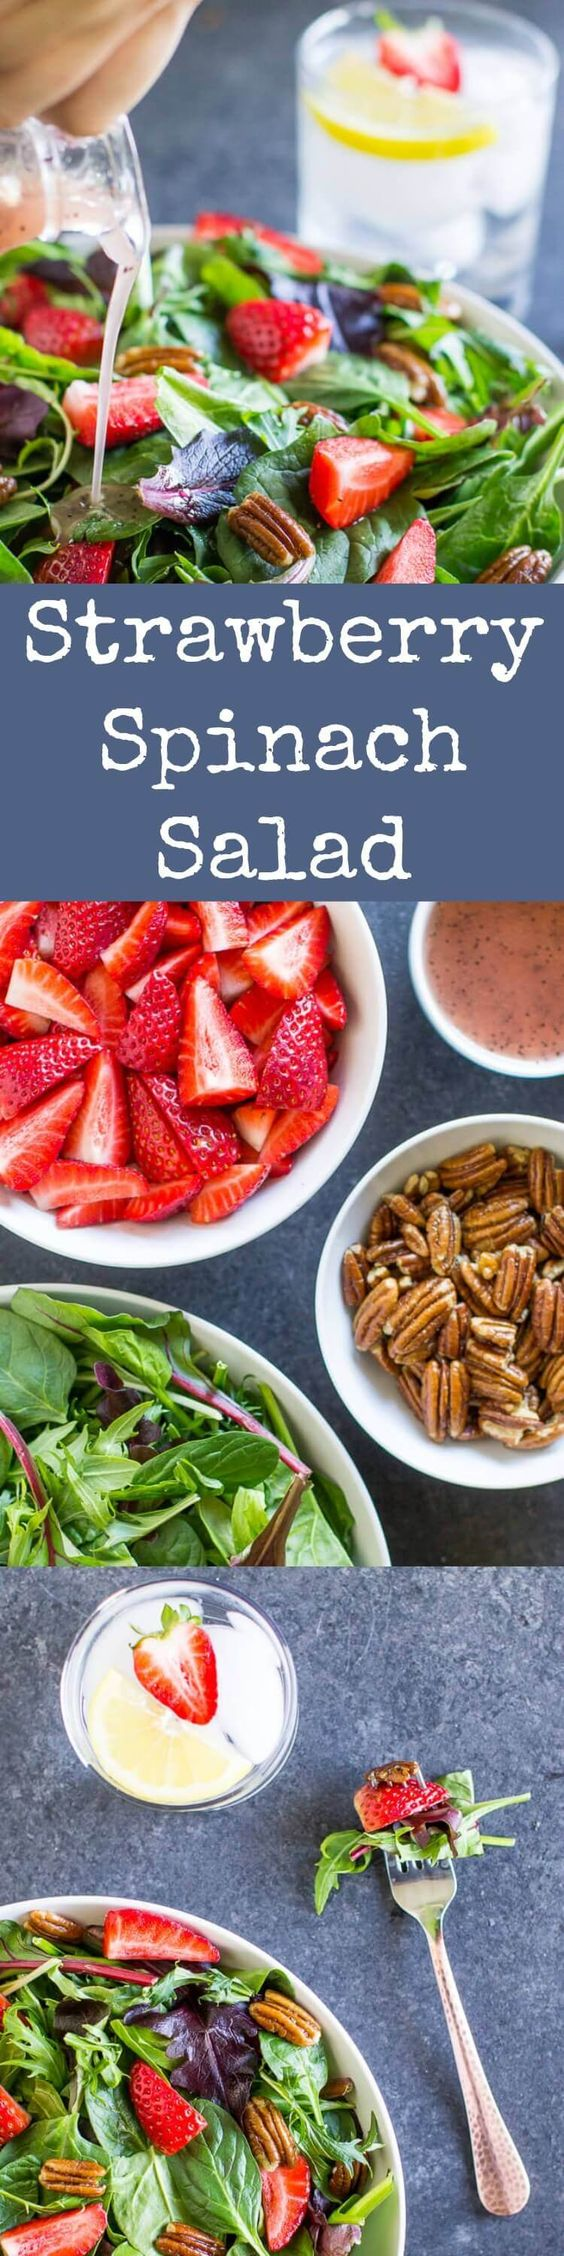 PC: http://www.culinaryhill.com/strawberry-pecan-spinach-salad/